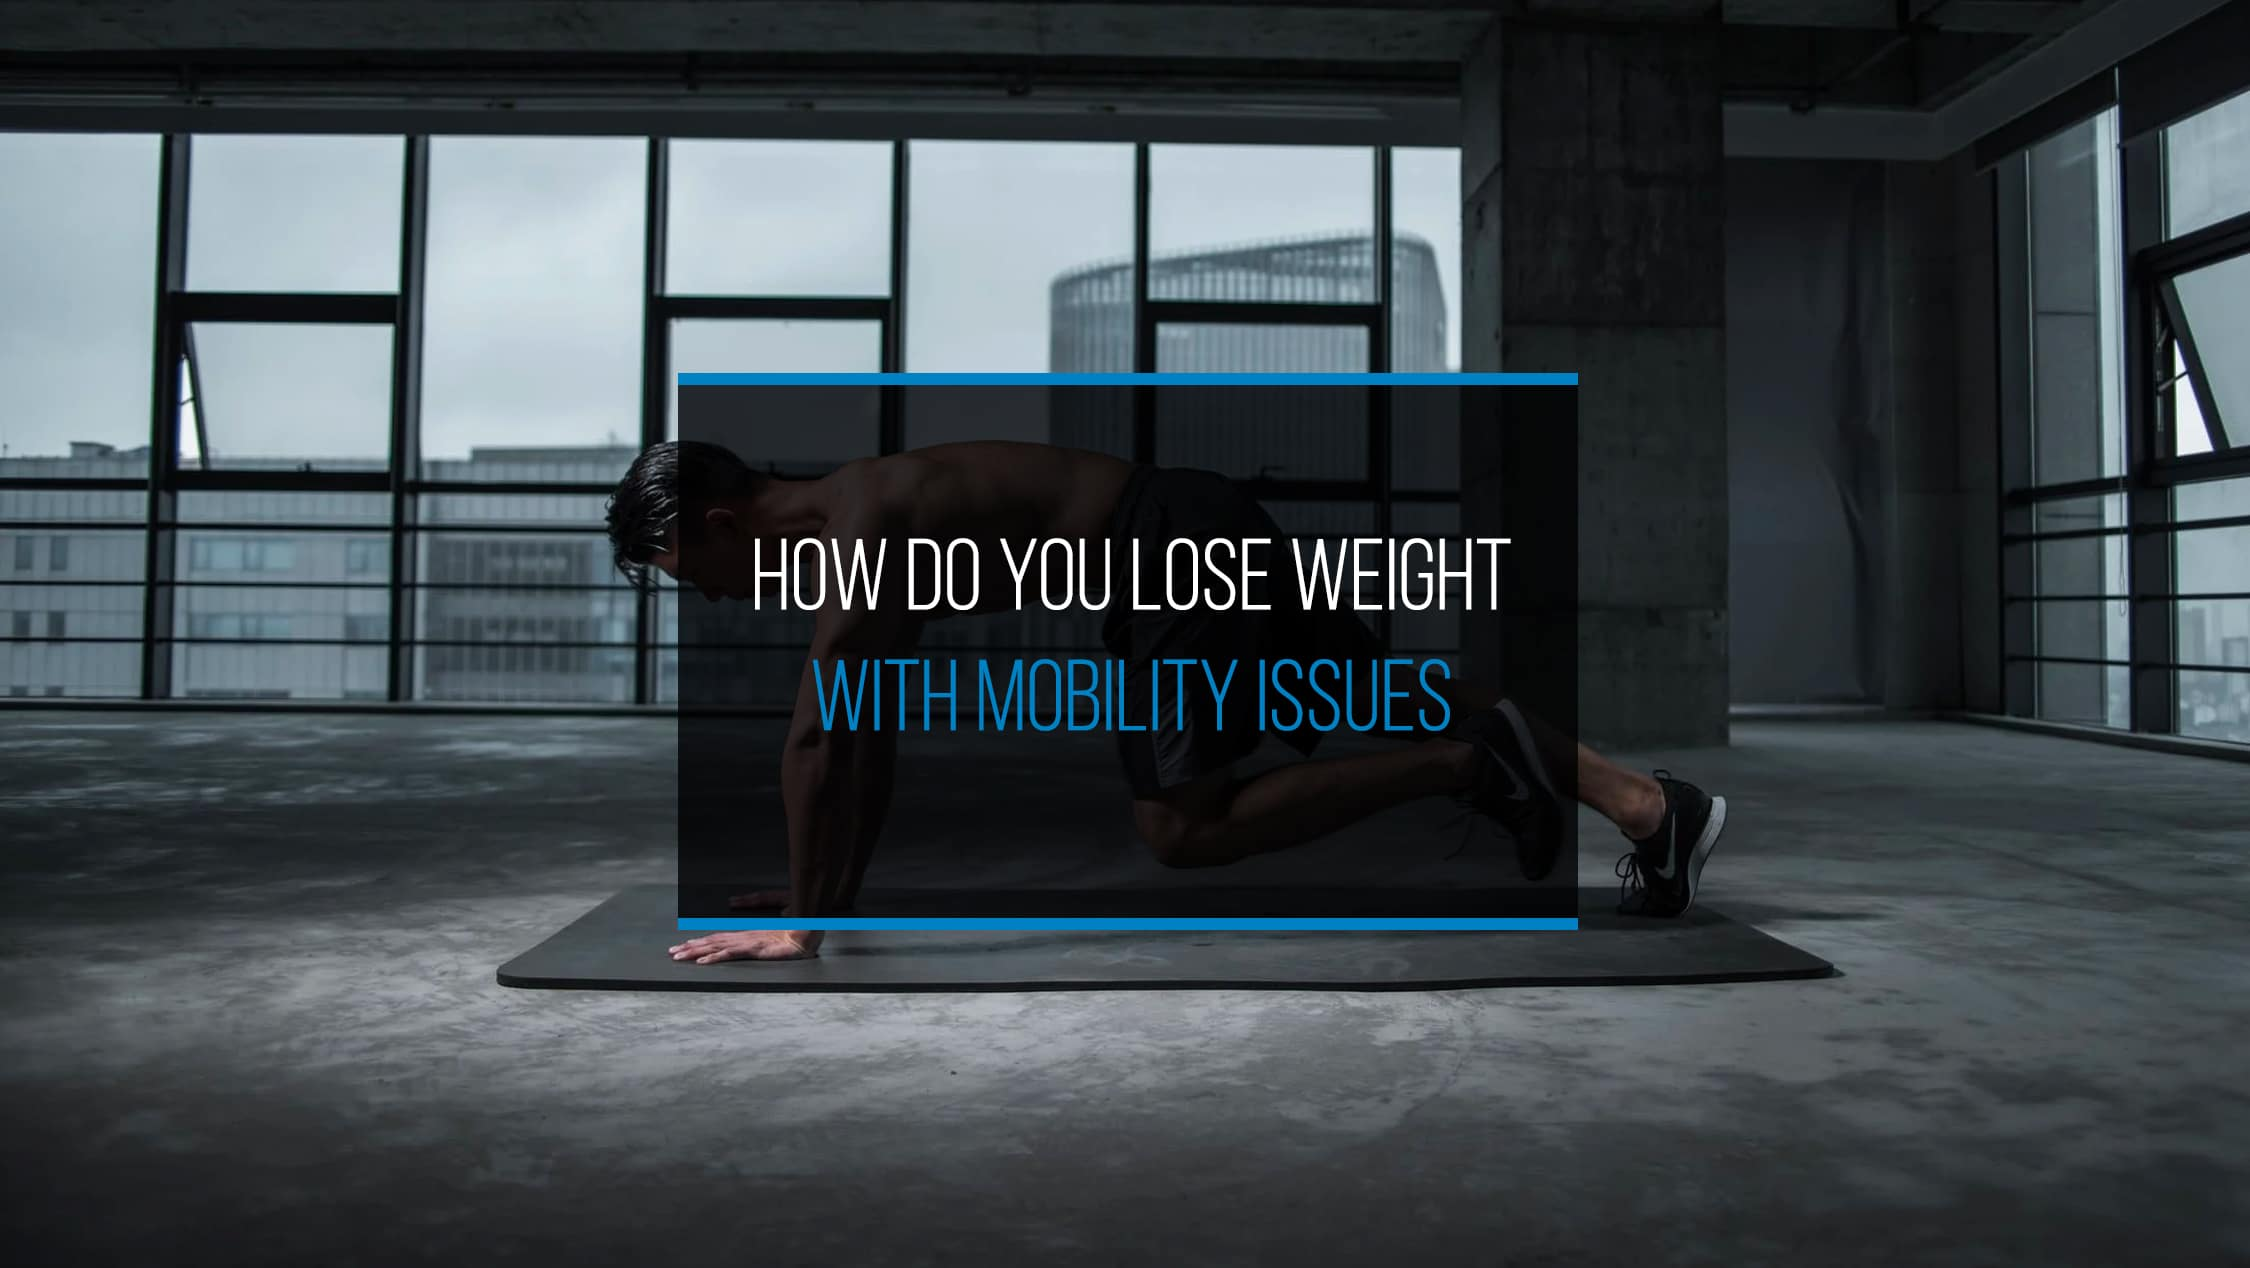 How do you lose weight with mobility issues